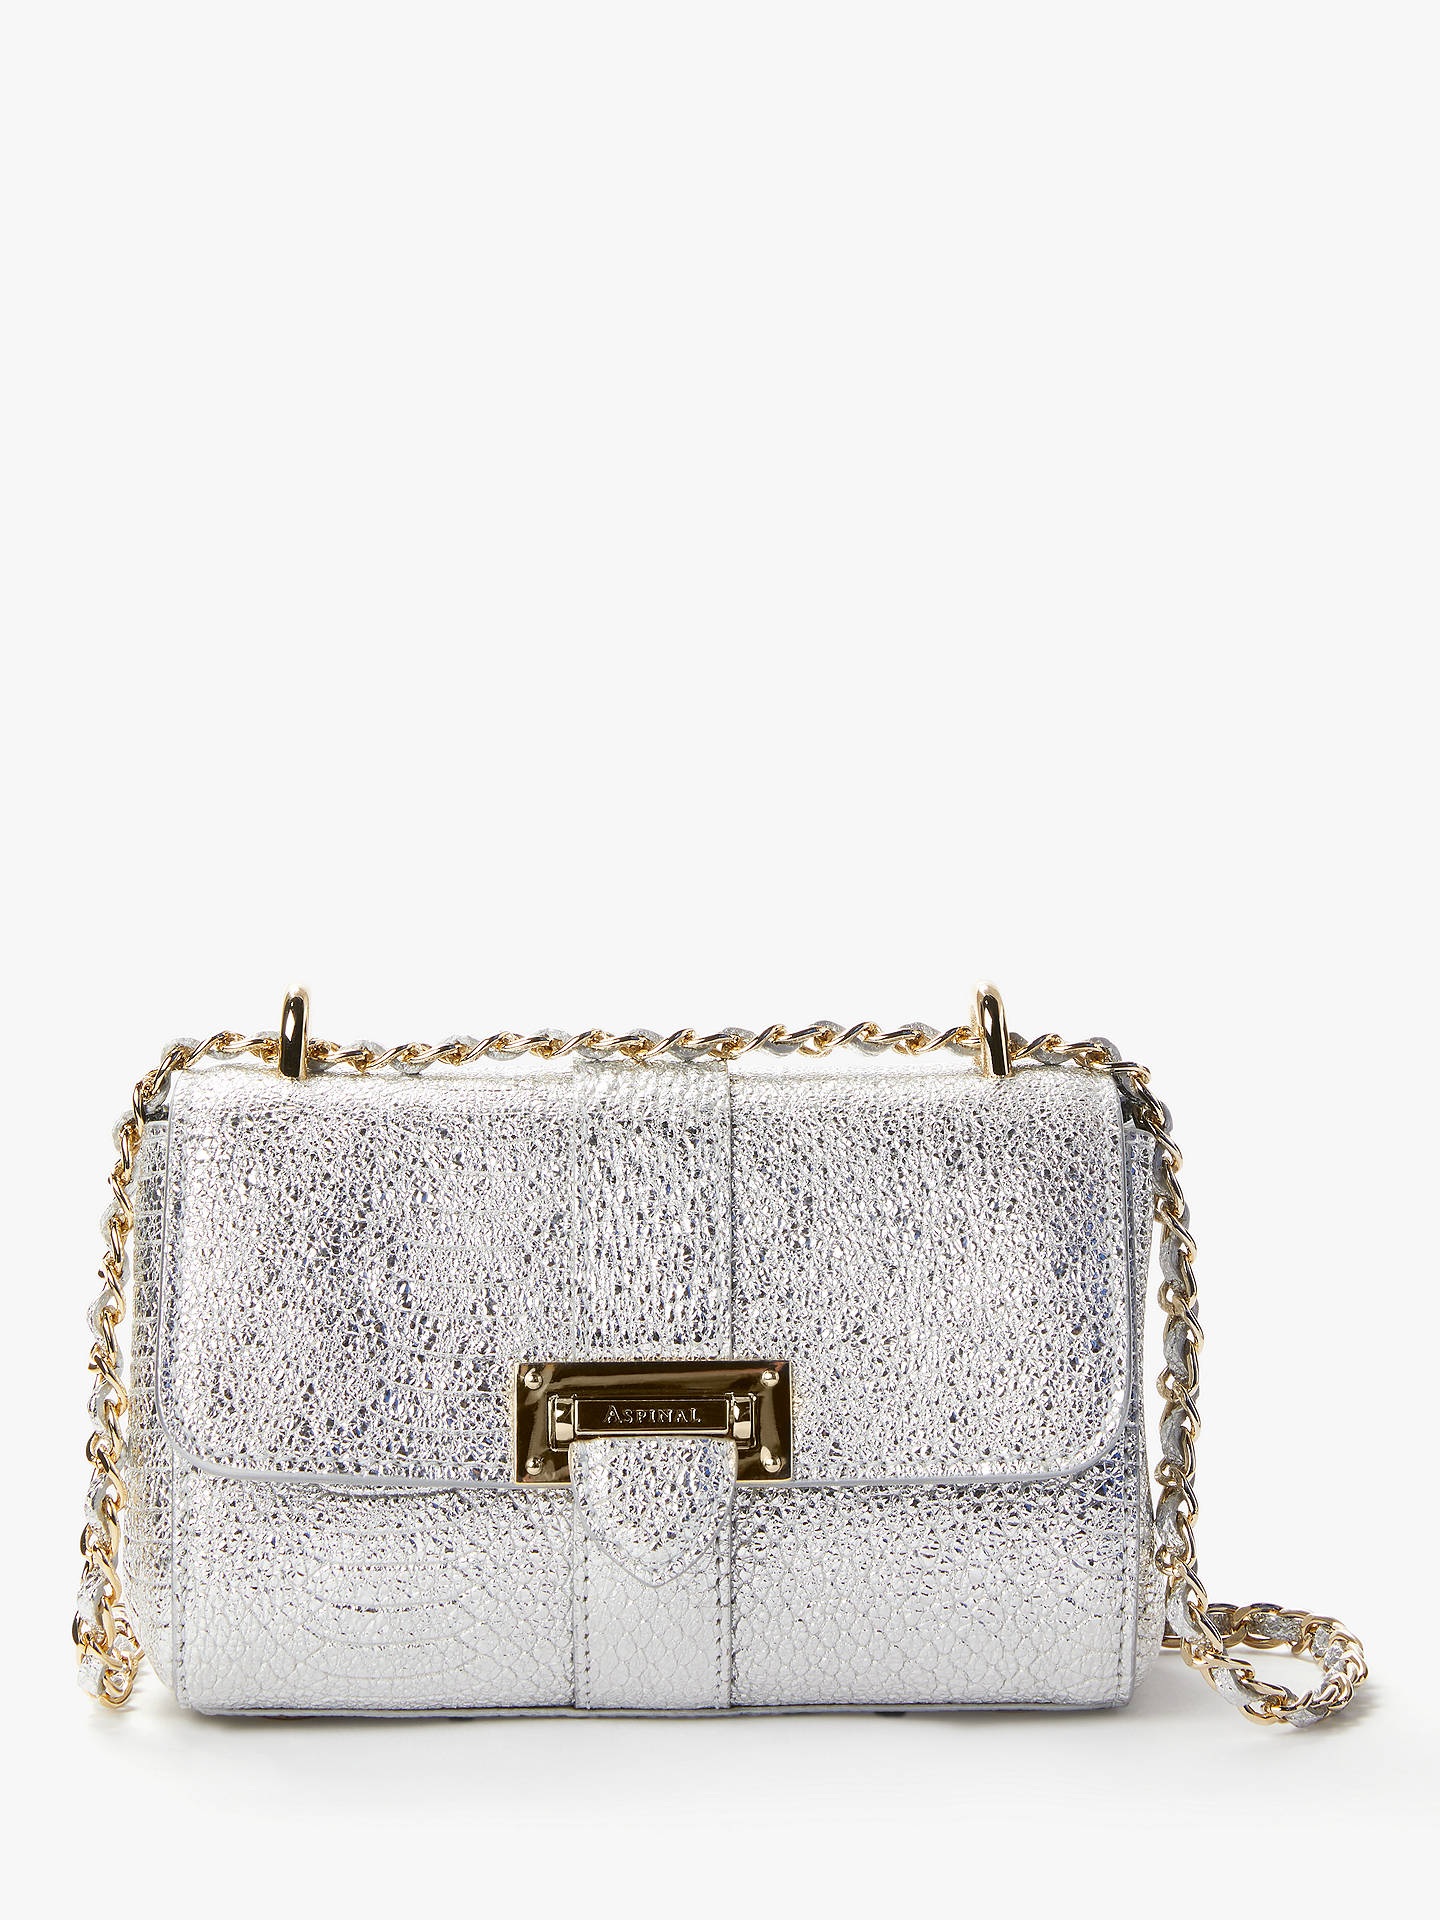 510534f51418 Buy Aspinal of London Lottie Leather Micro Cross Body Bag, Metallic Python  Silver Online at ...